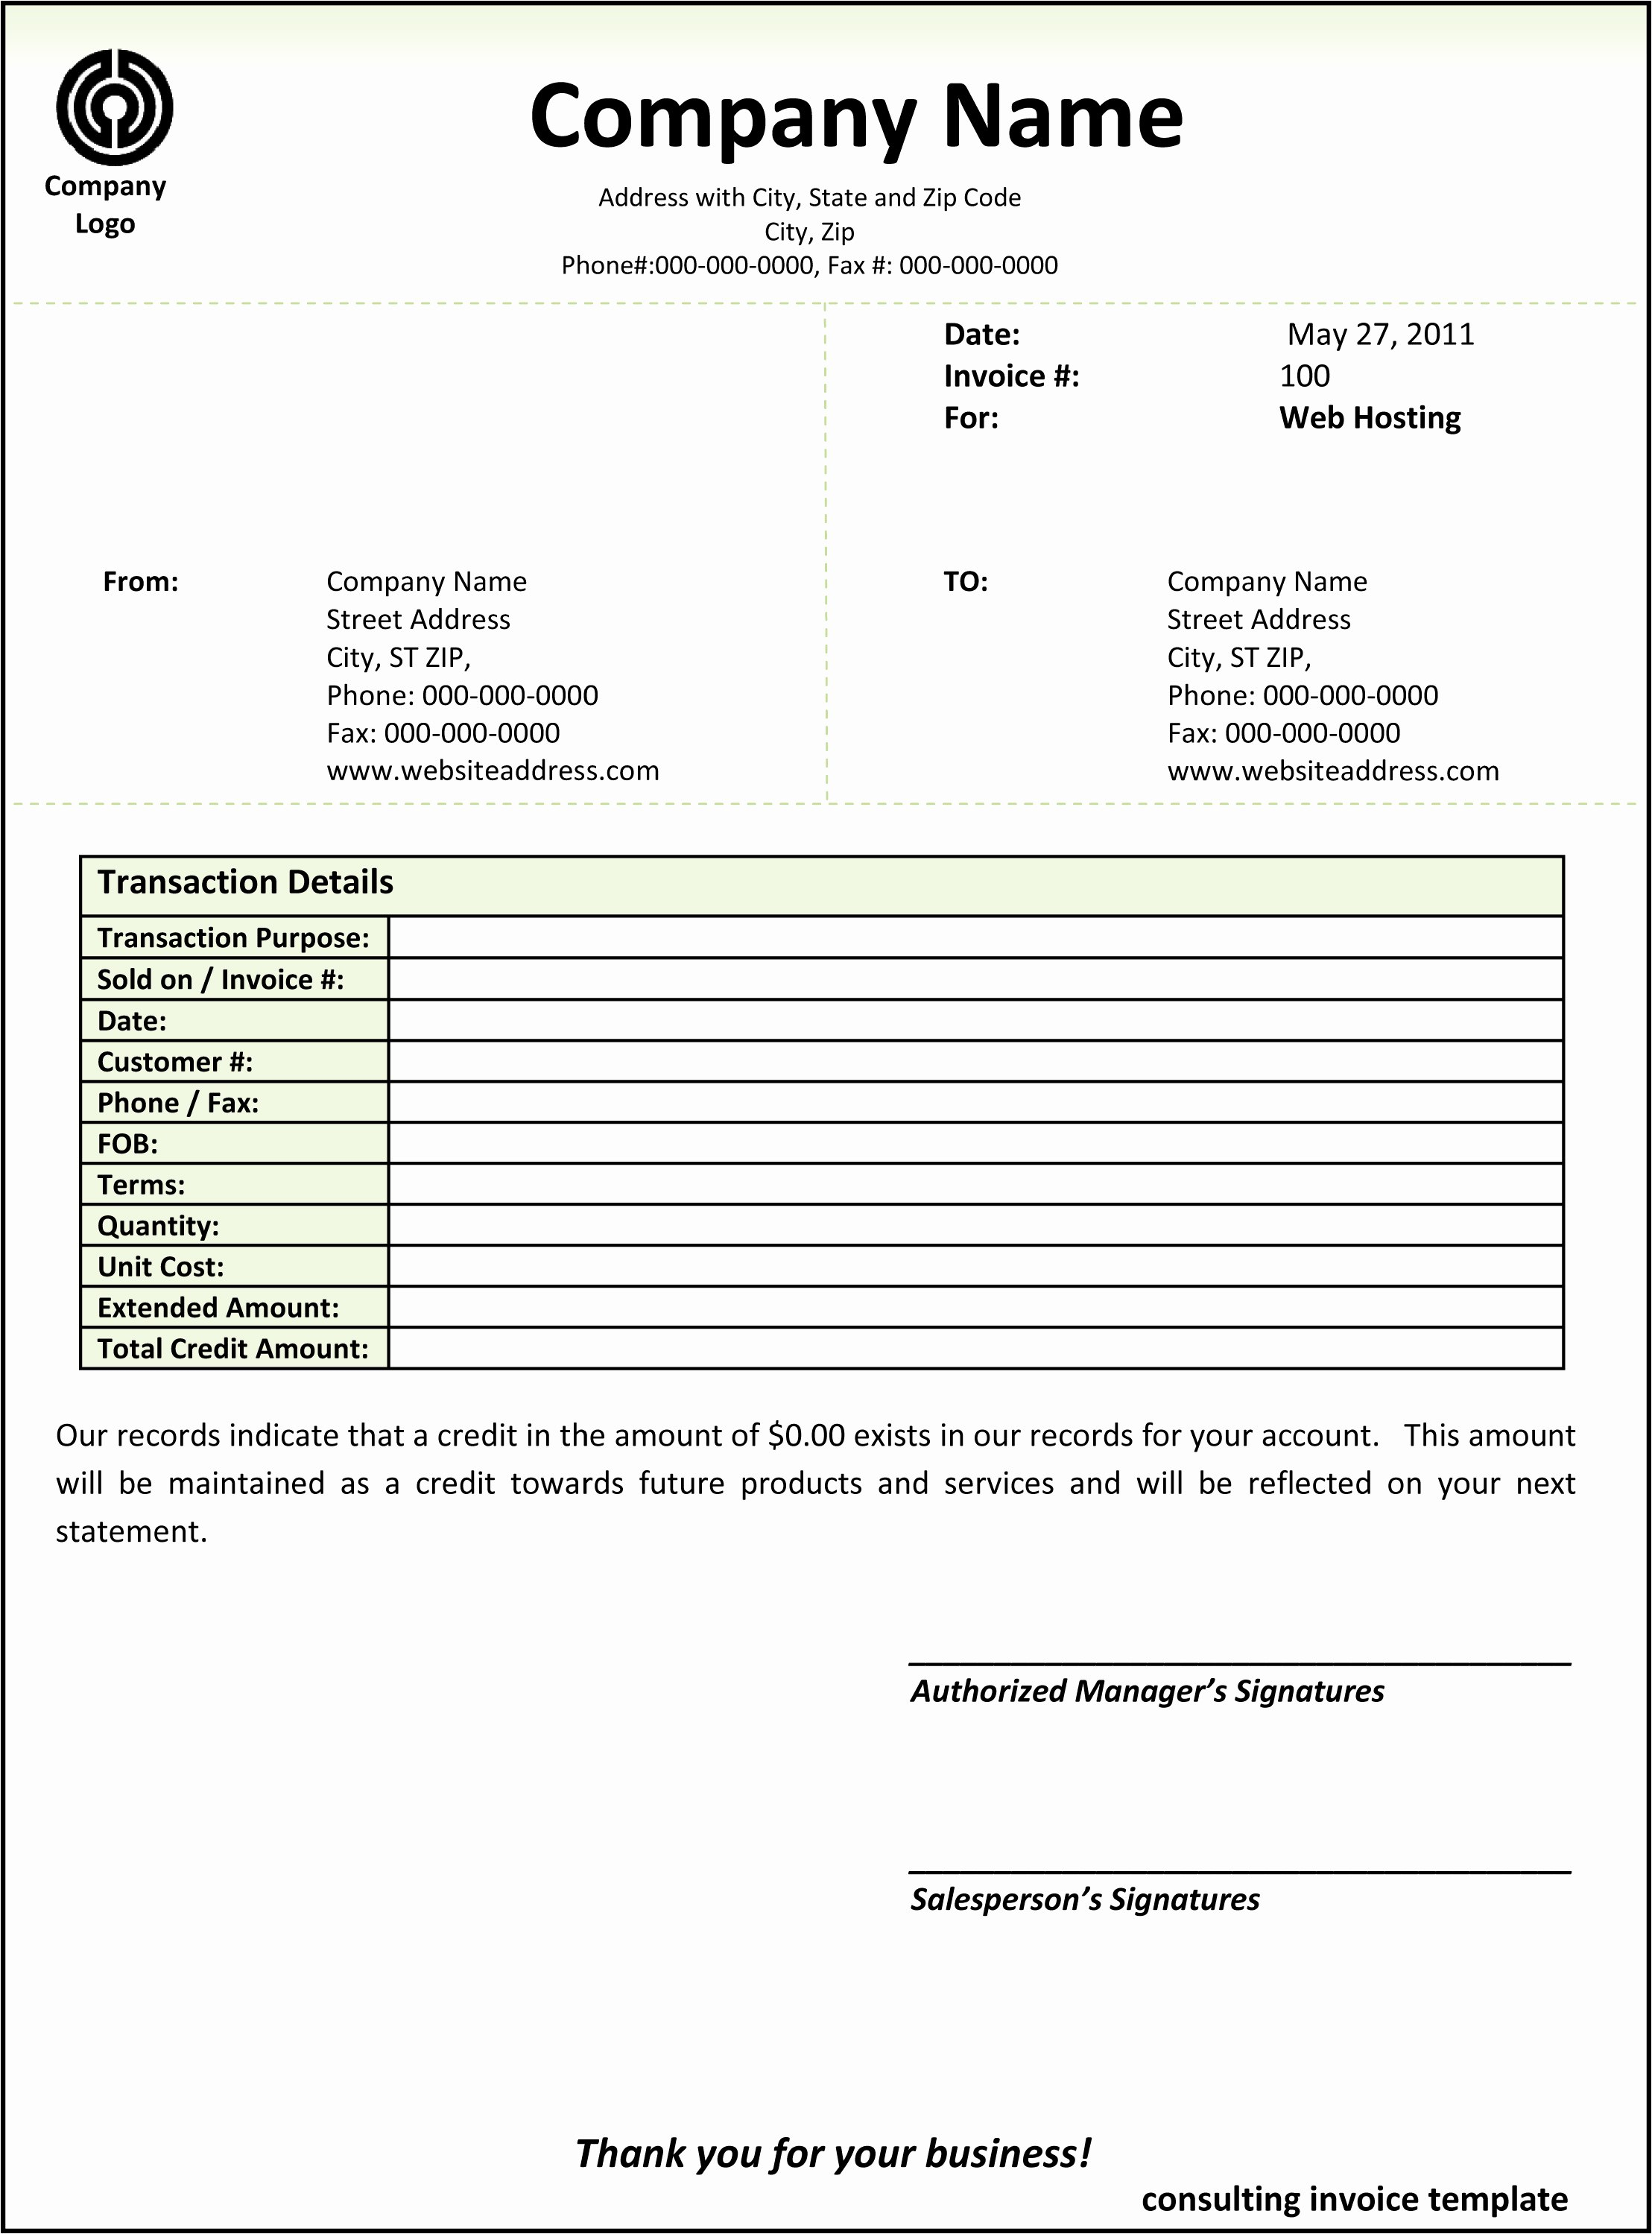 Free Consulting Invoice Template Word Template – Wfacca With Regard To Free Consulting Invoice Template Word